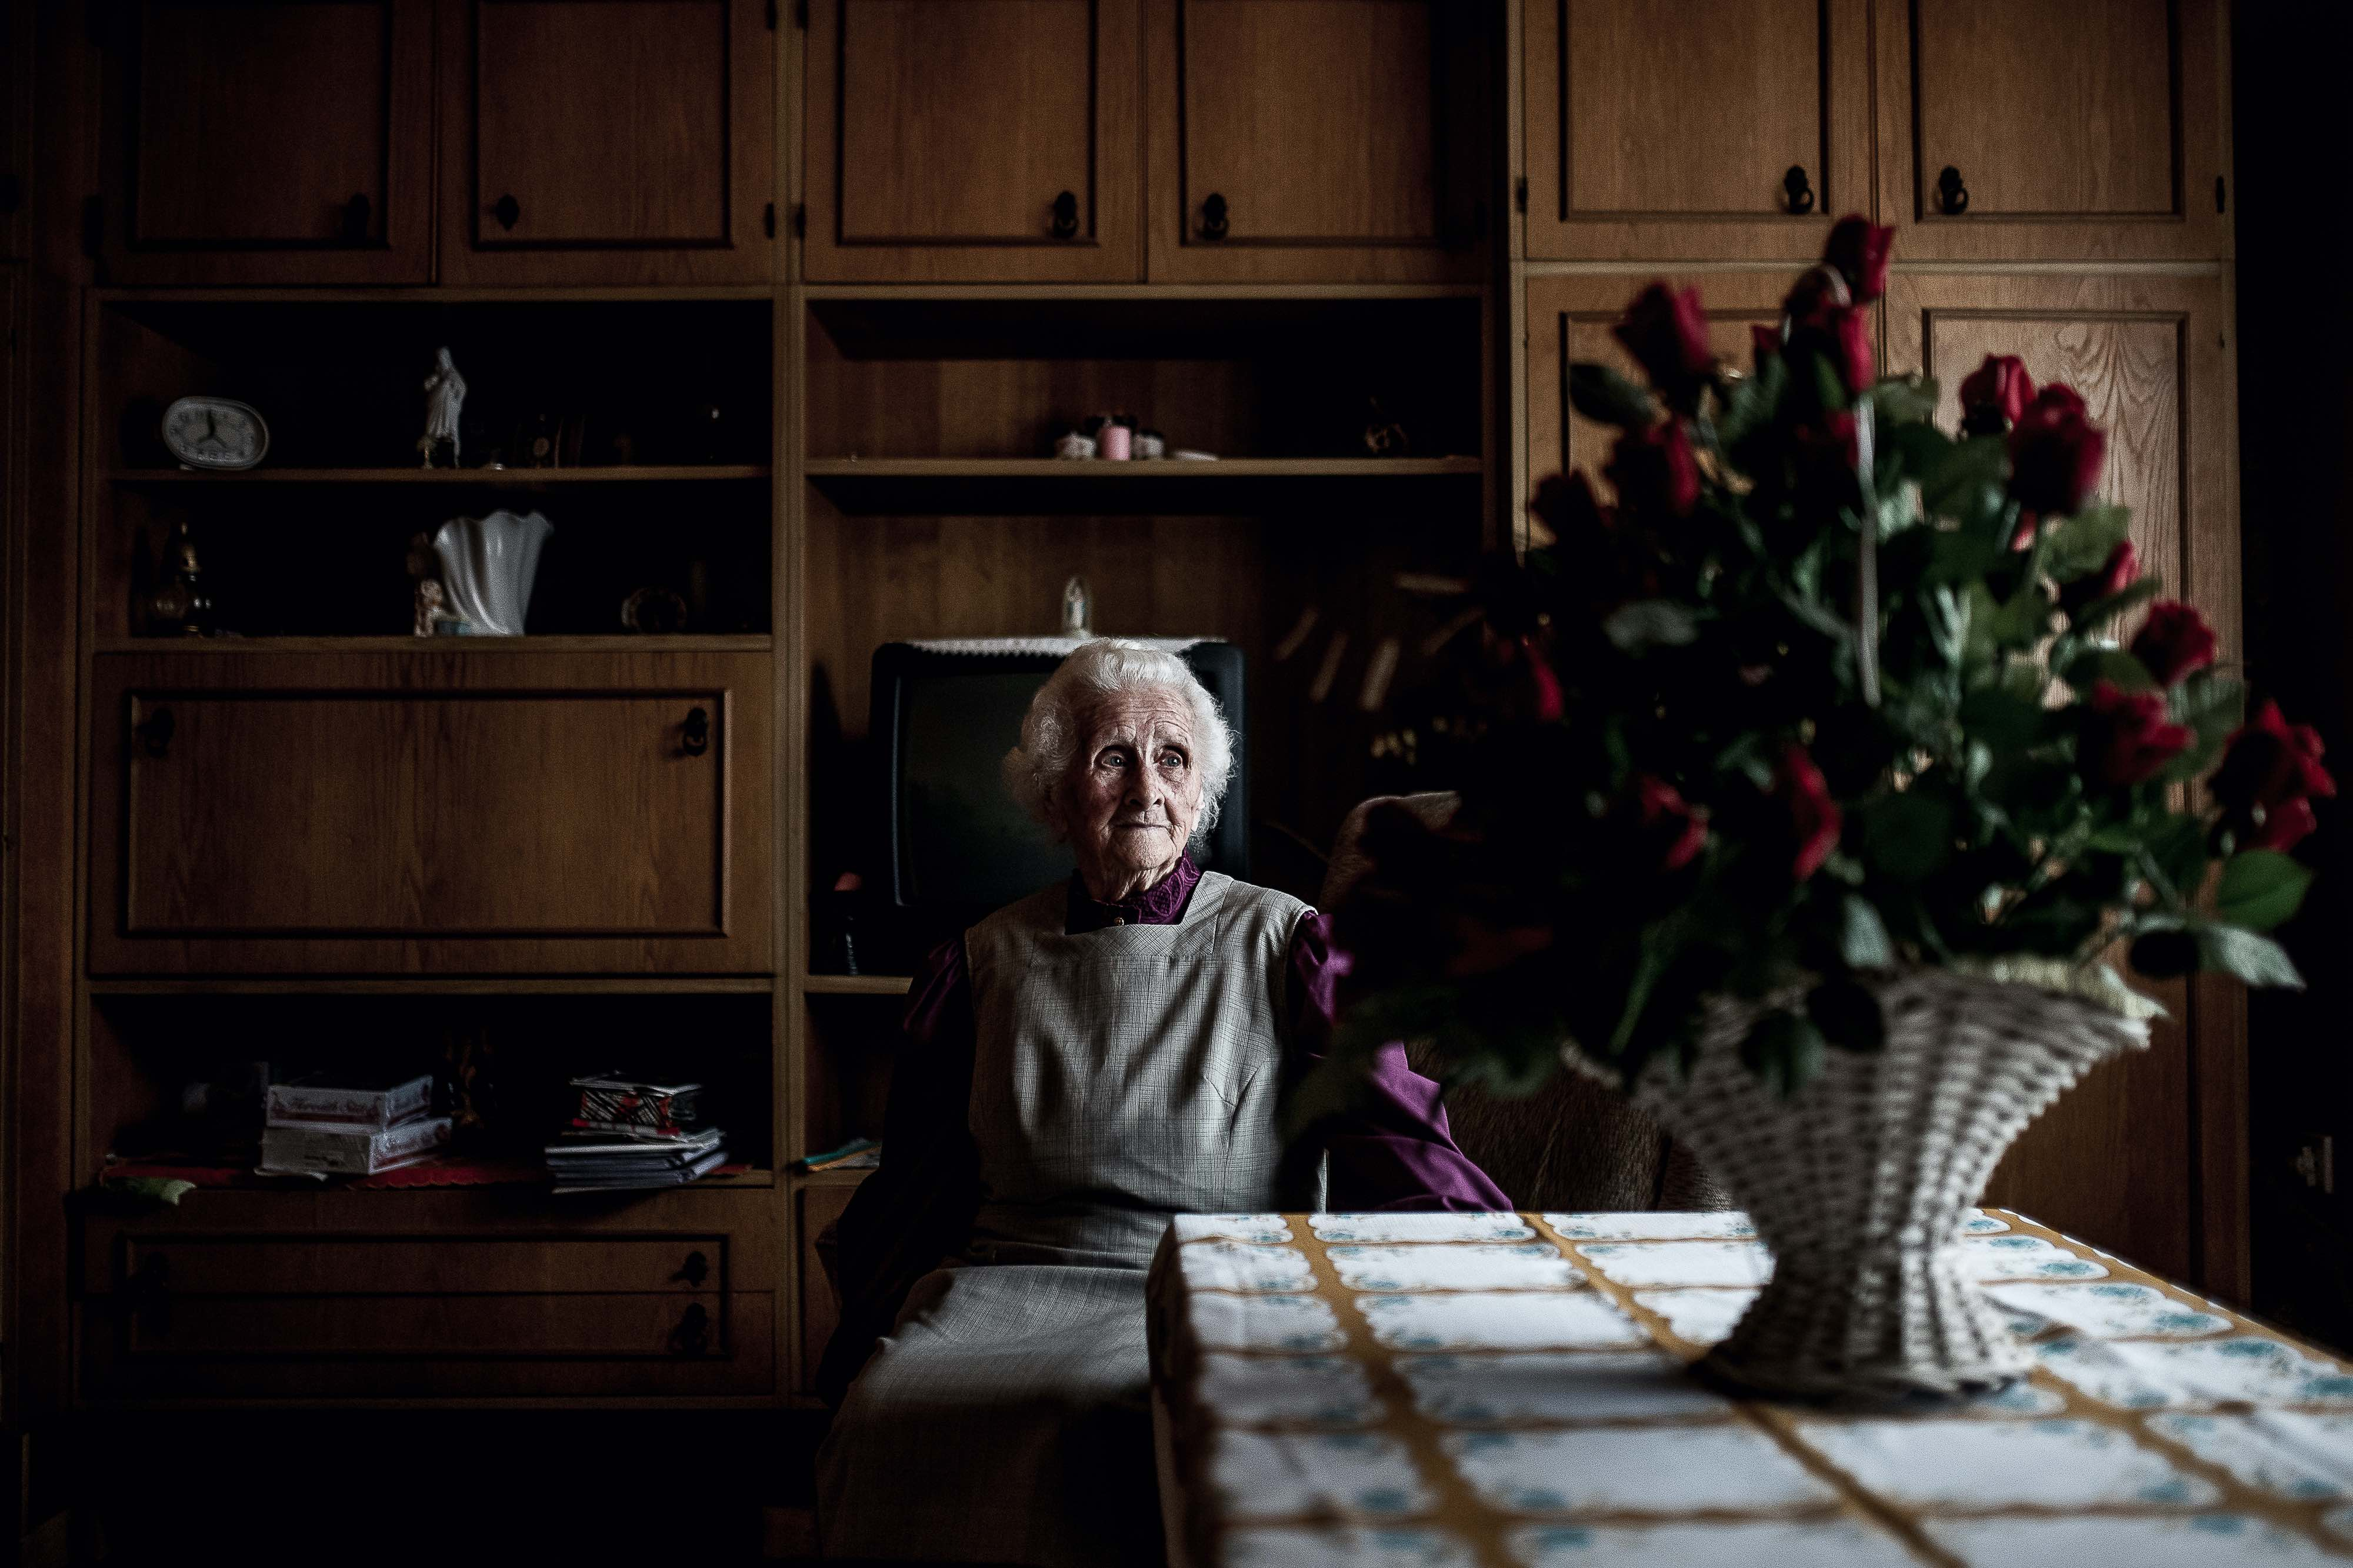 From the series The Last Storytellers, by István Bielik